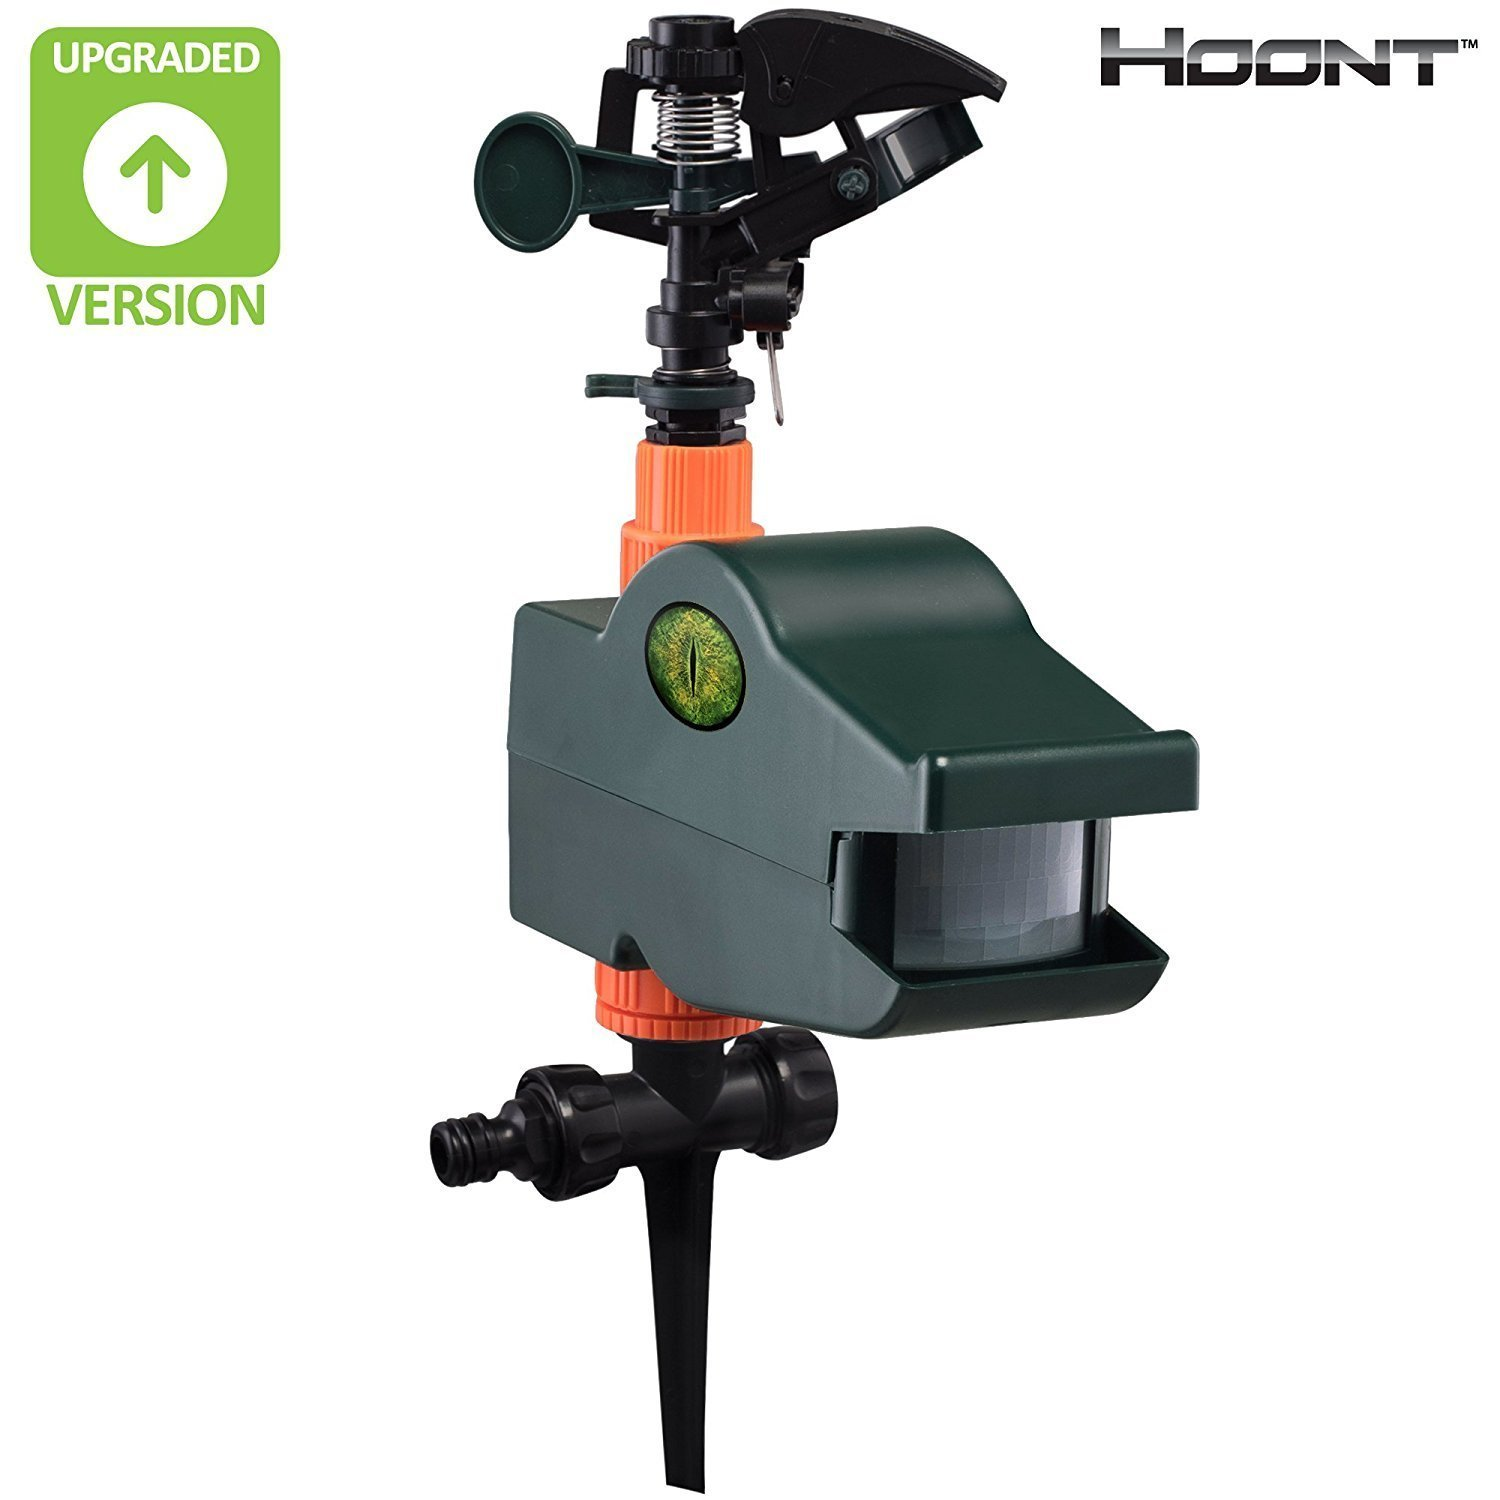 Water Jet Blaster Yard and Garden Animal Pest Control Motion Activated Sprinkler Deer and Rodent Repellent by Hoont